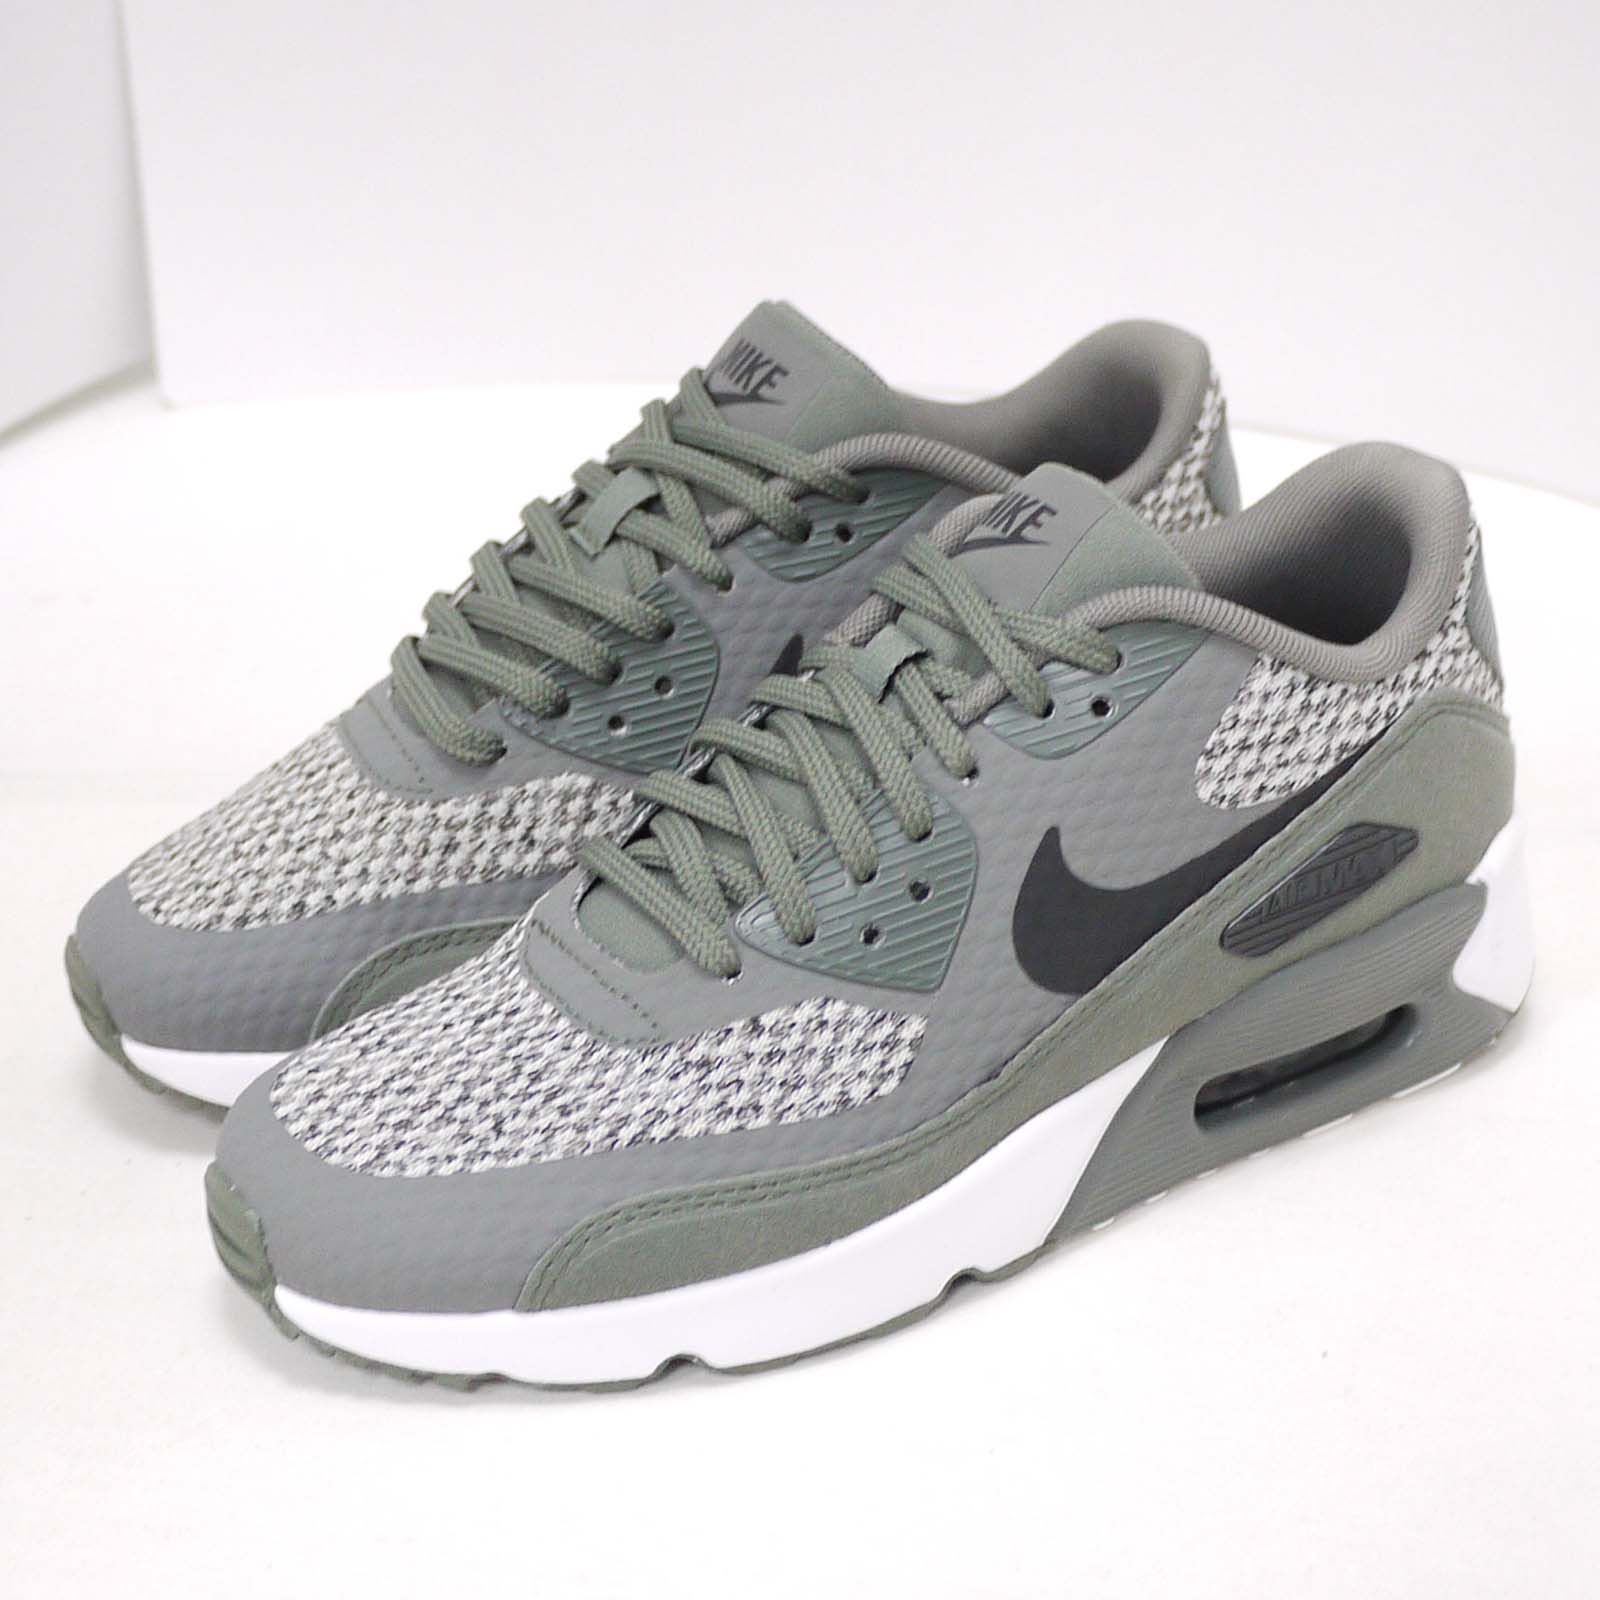 a7a96e57322 Details about Nike Air Max 90 Ultra 2.0 SE GS Right Foot With Defect Inside  Kid 917988-004